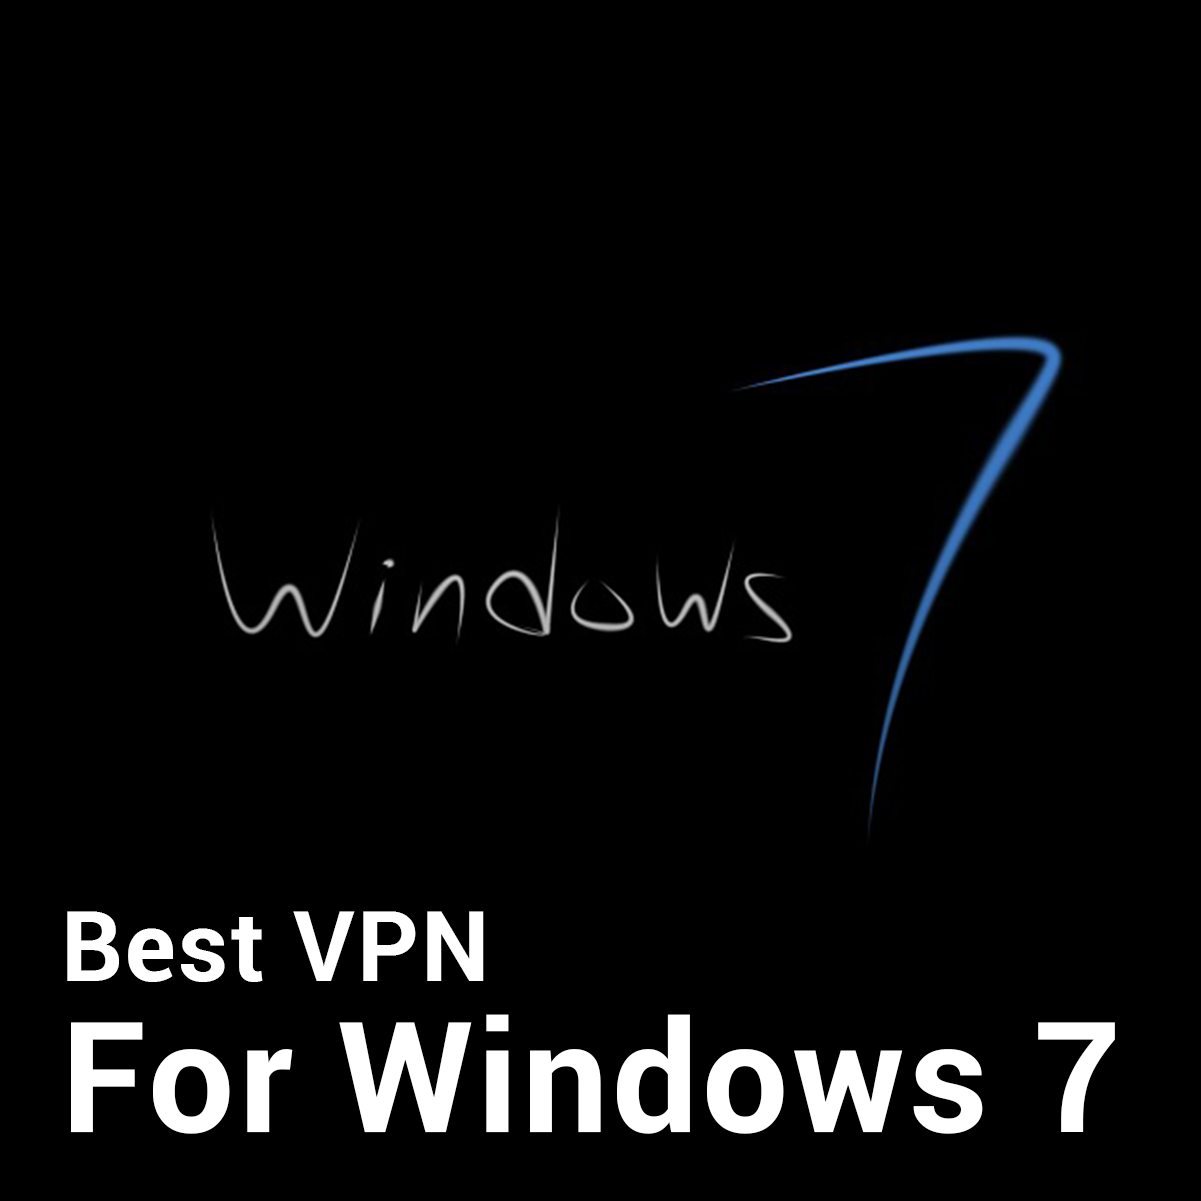 5ebbad8a7f36d46d15e92f250a30ecdd - Step By Step Vpn Setup Windows 7